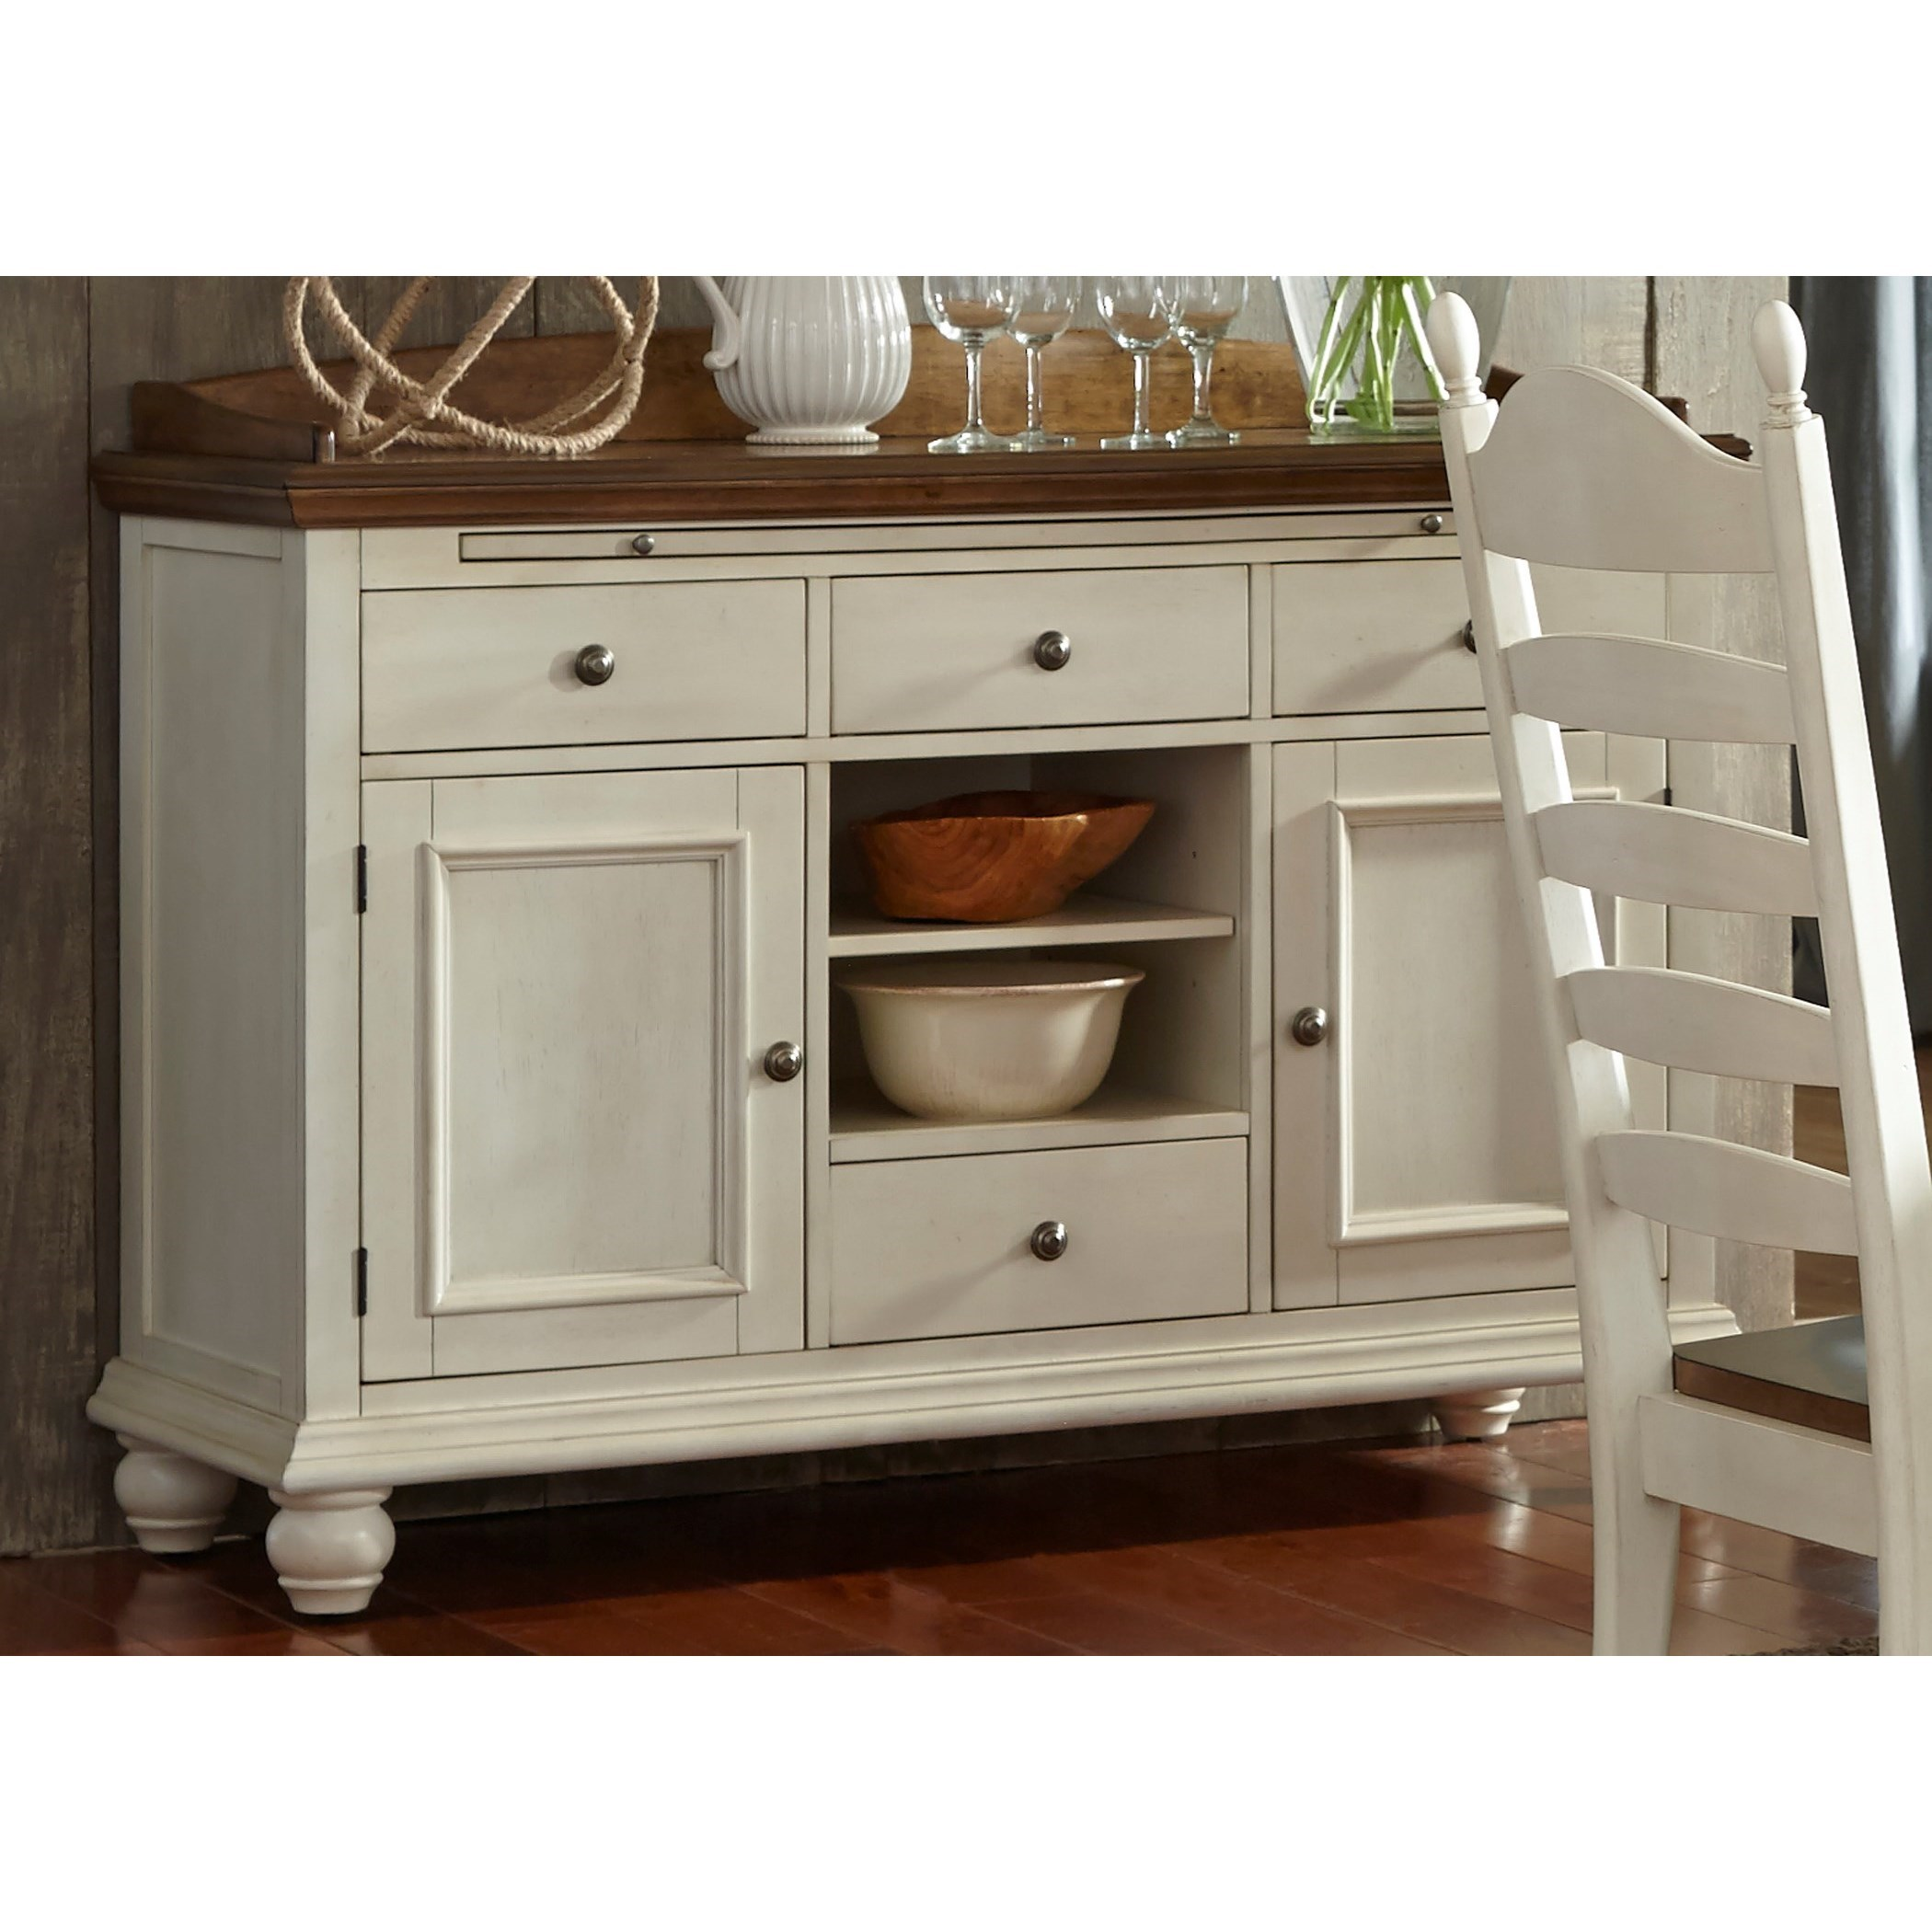 Springfield Dining 4 Drawer Sideboard by Libby at Walker's Furniture